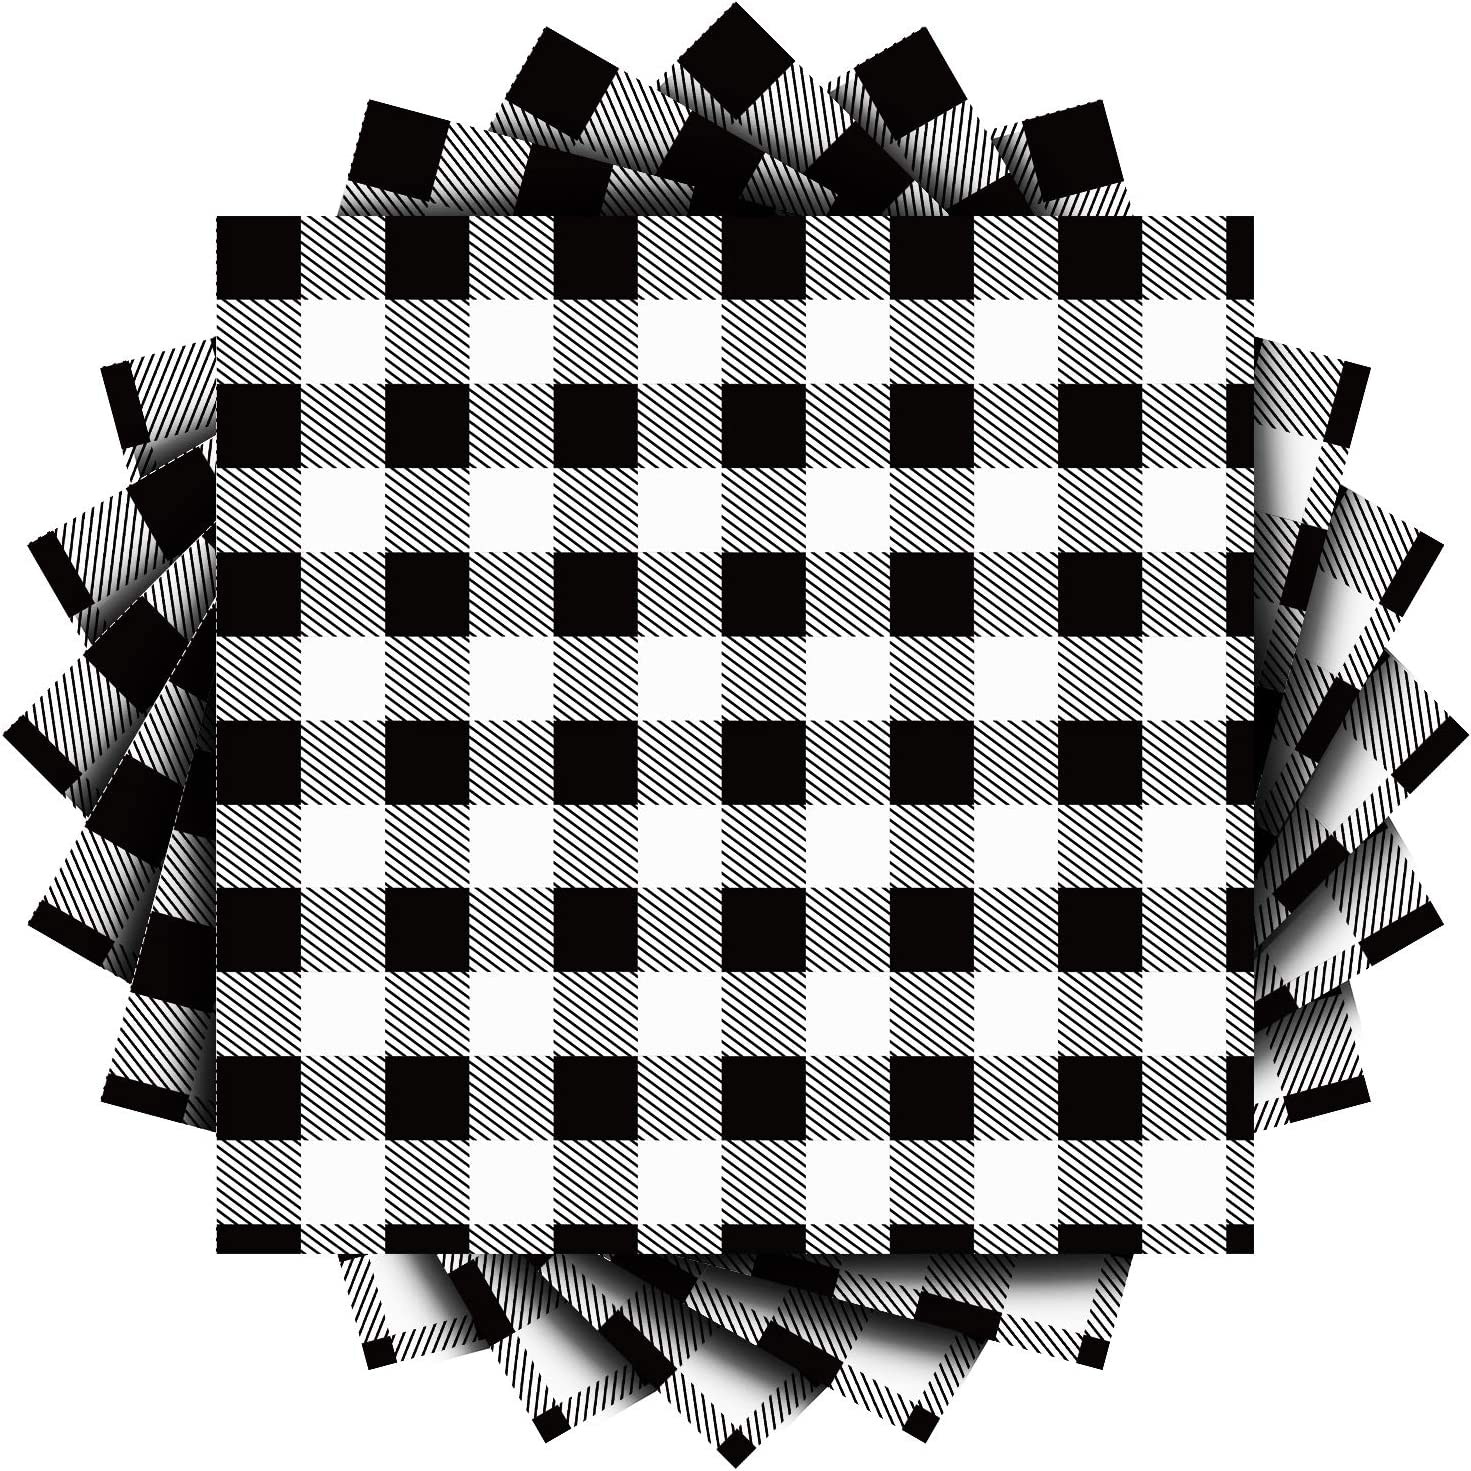 Aneco 60 Pack Black and White Plaid Papers Napkins Luncheon Napkins for Wedding, Party, Birthday, Dinner, Lunch with 3 Layers, 6.5 by 6.5 Inches